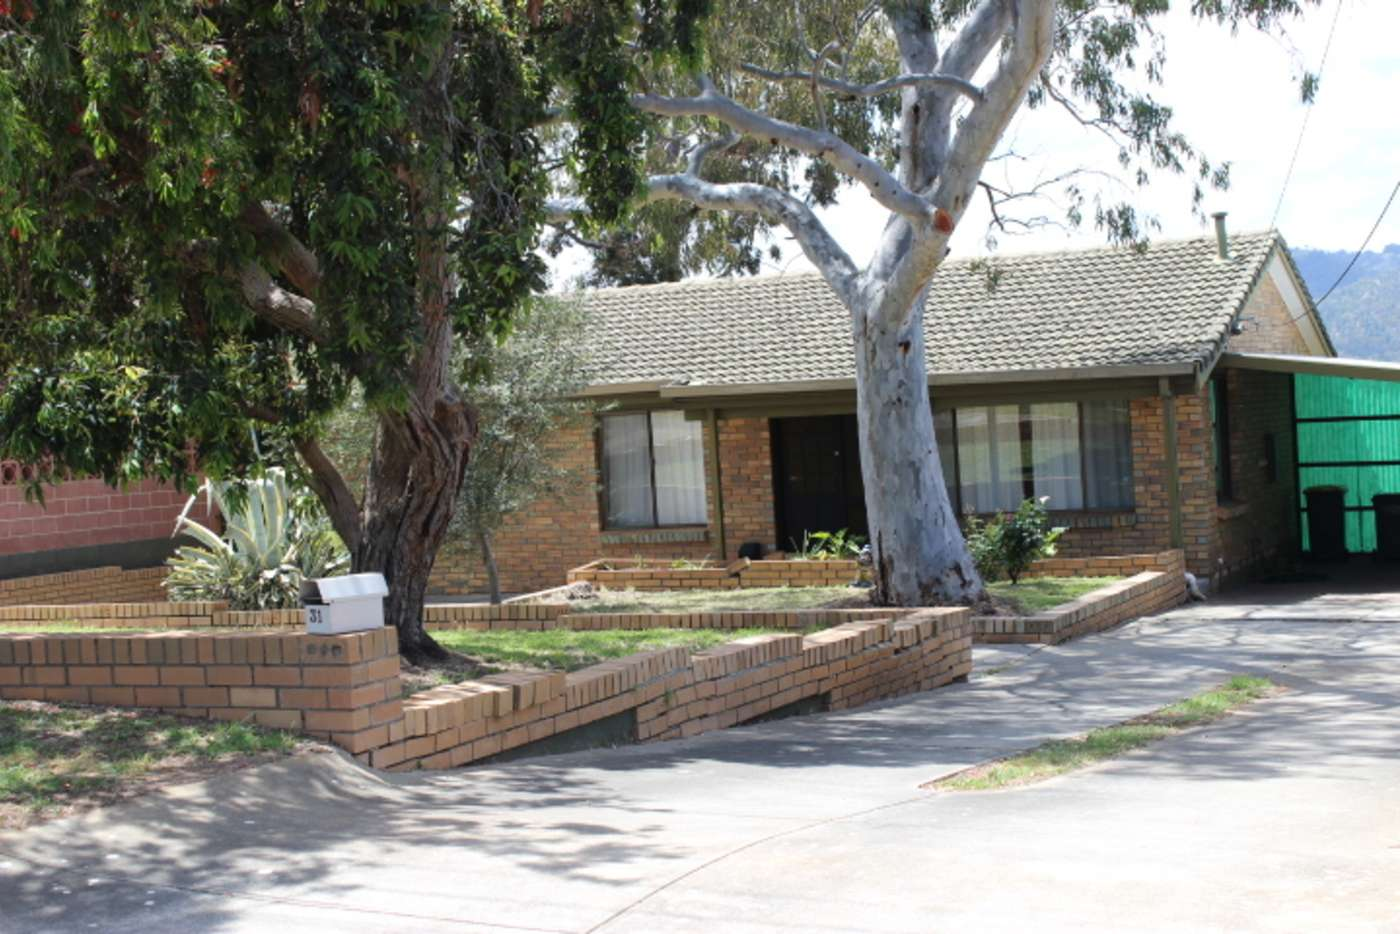 Main view of Homely house listing, 31 Packers Drive, Highbury SA 5089